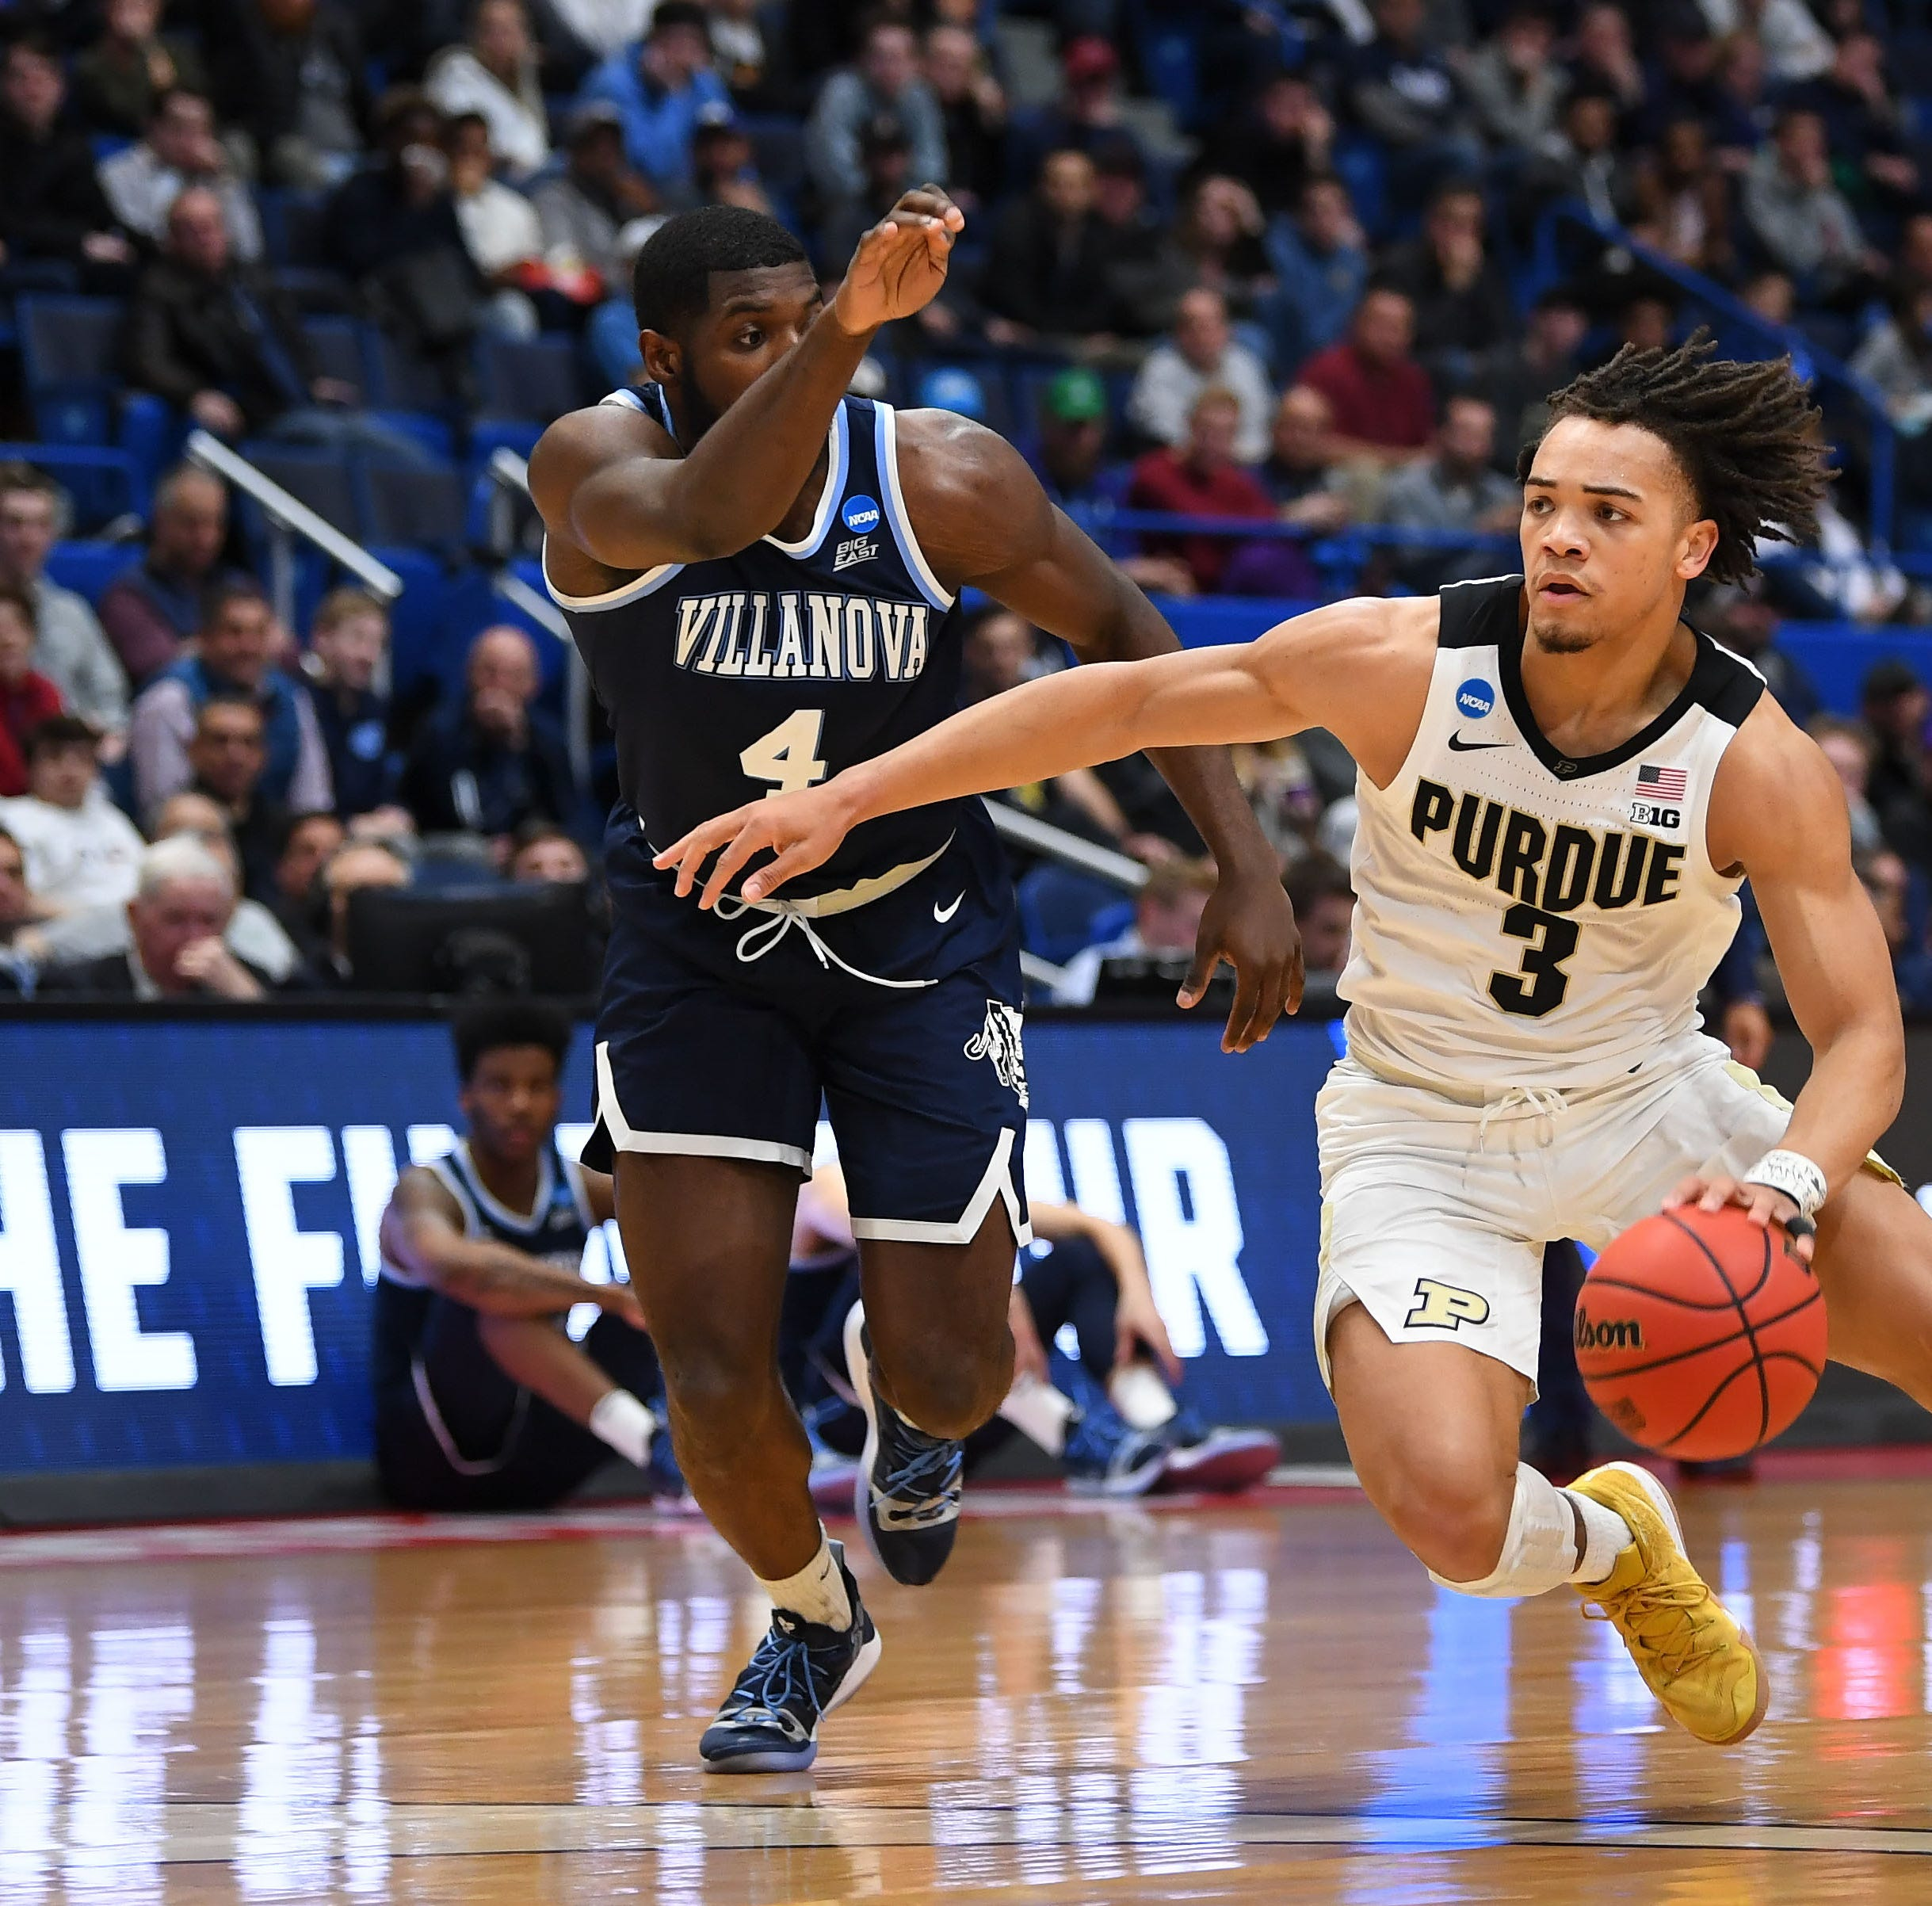 'Do not let him shoot!' Opponents' scouting reports vs. Purdue start, end with Carsen Edwards